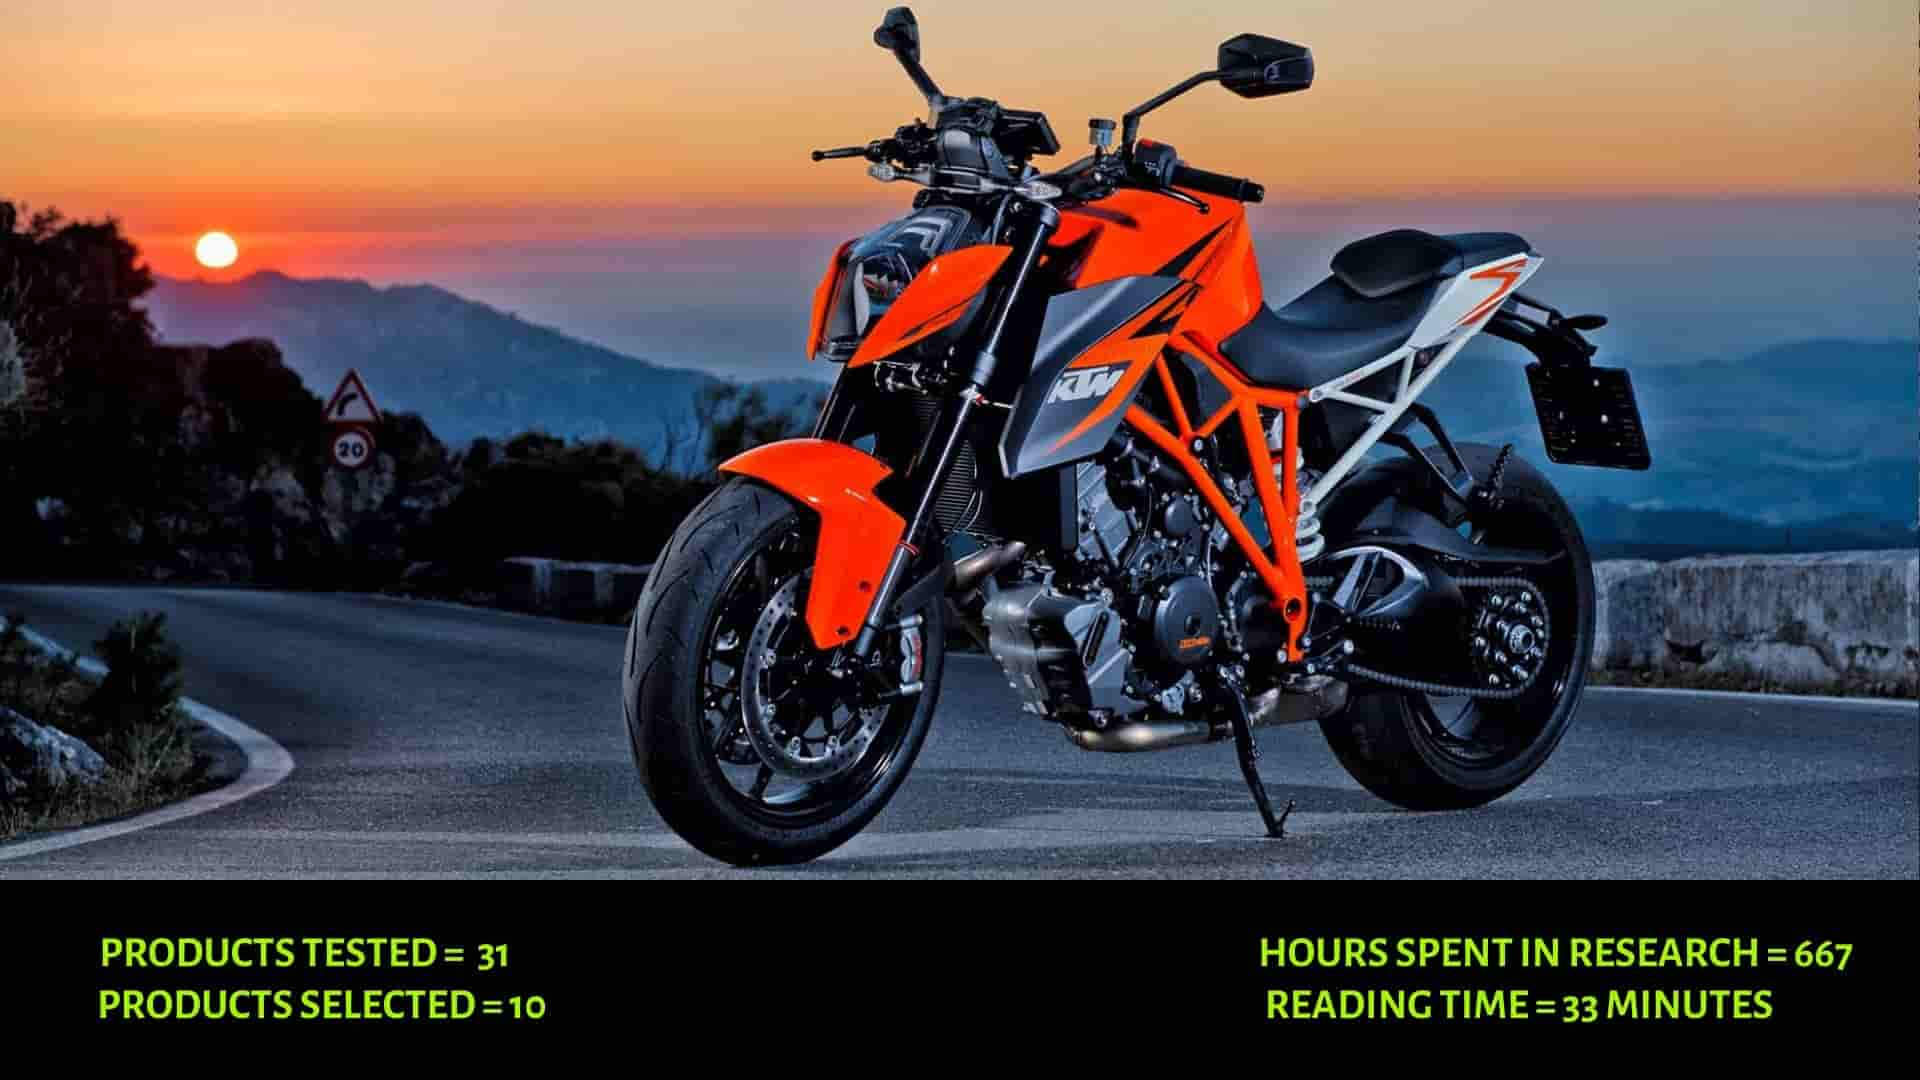 Best Bike Under 1.5 Lakh in India in 2021 Reviews